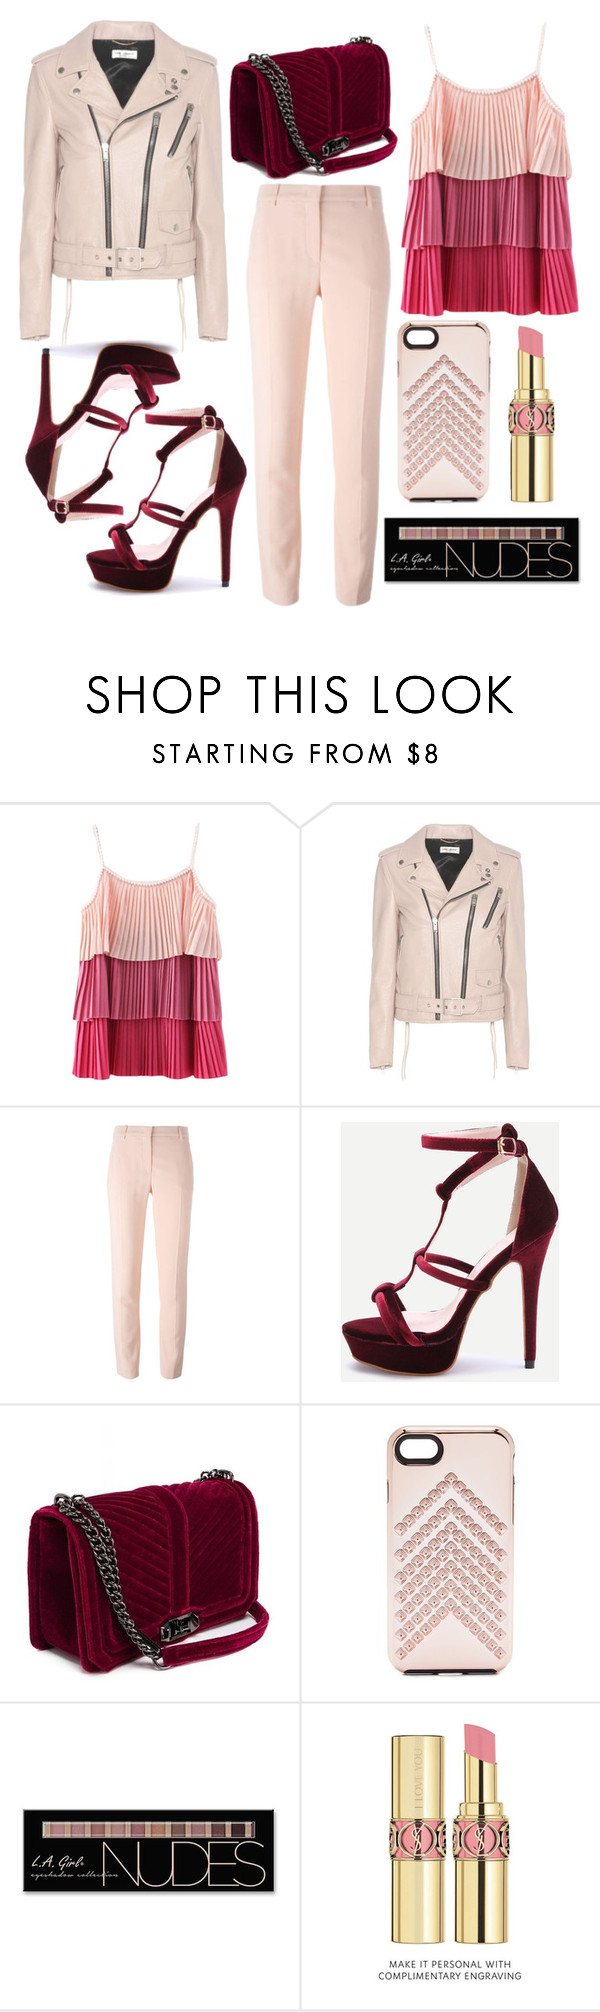 """Such a pink day !"" by mexie ❤ liked on Polyvore featuring Yves Saint Laurent, Rebecca Minkoff and Charlotte Russe"